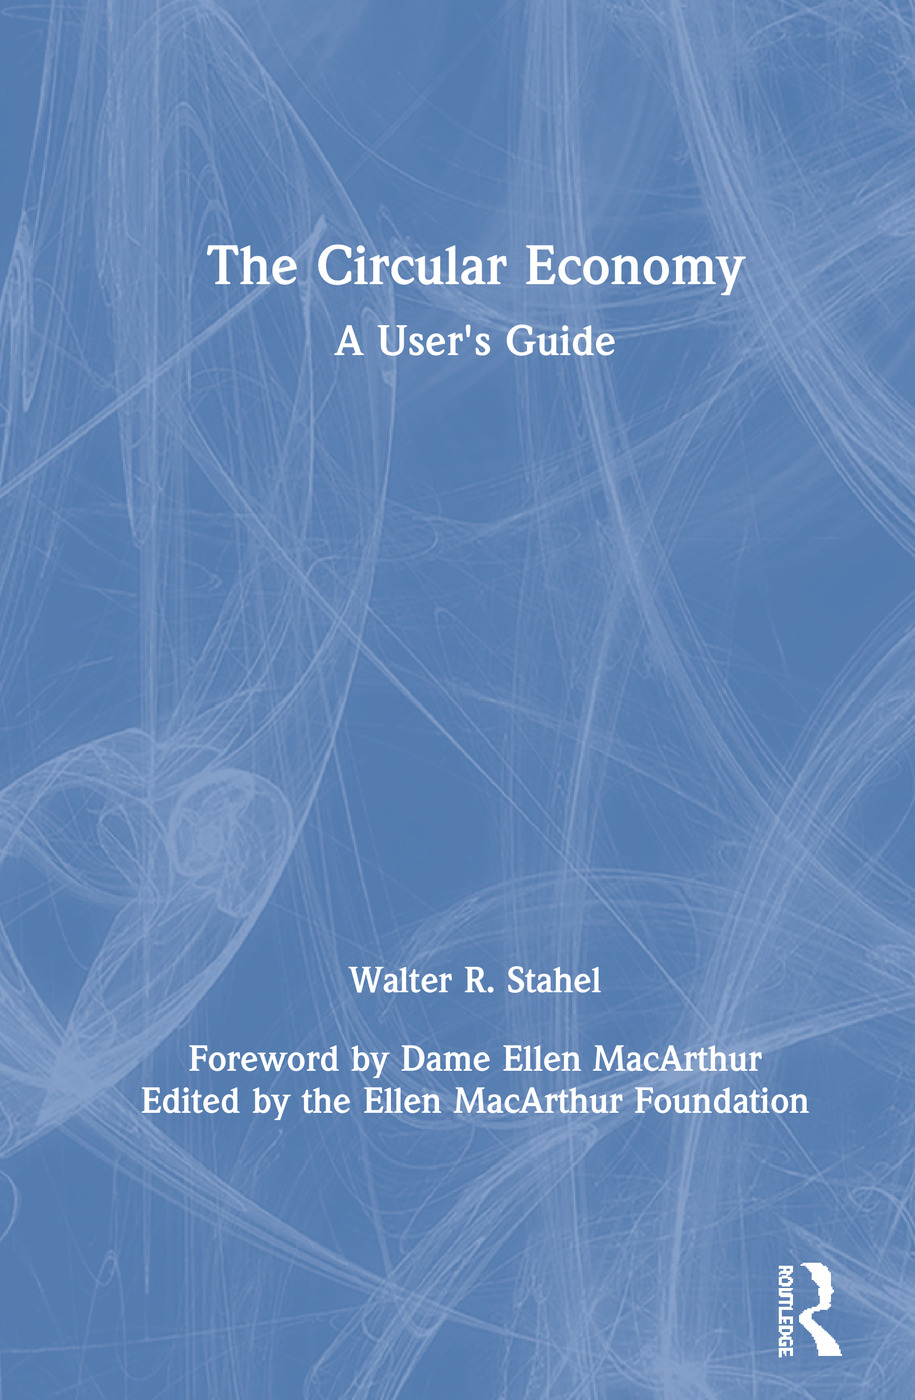 The Circular Economy: A User's Guide book cover